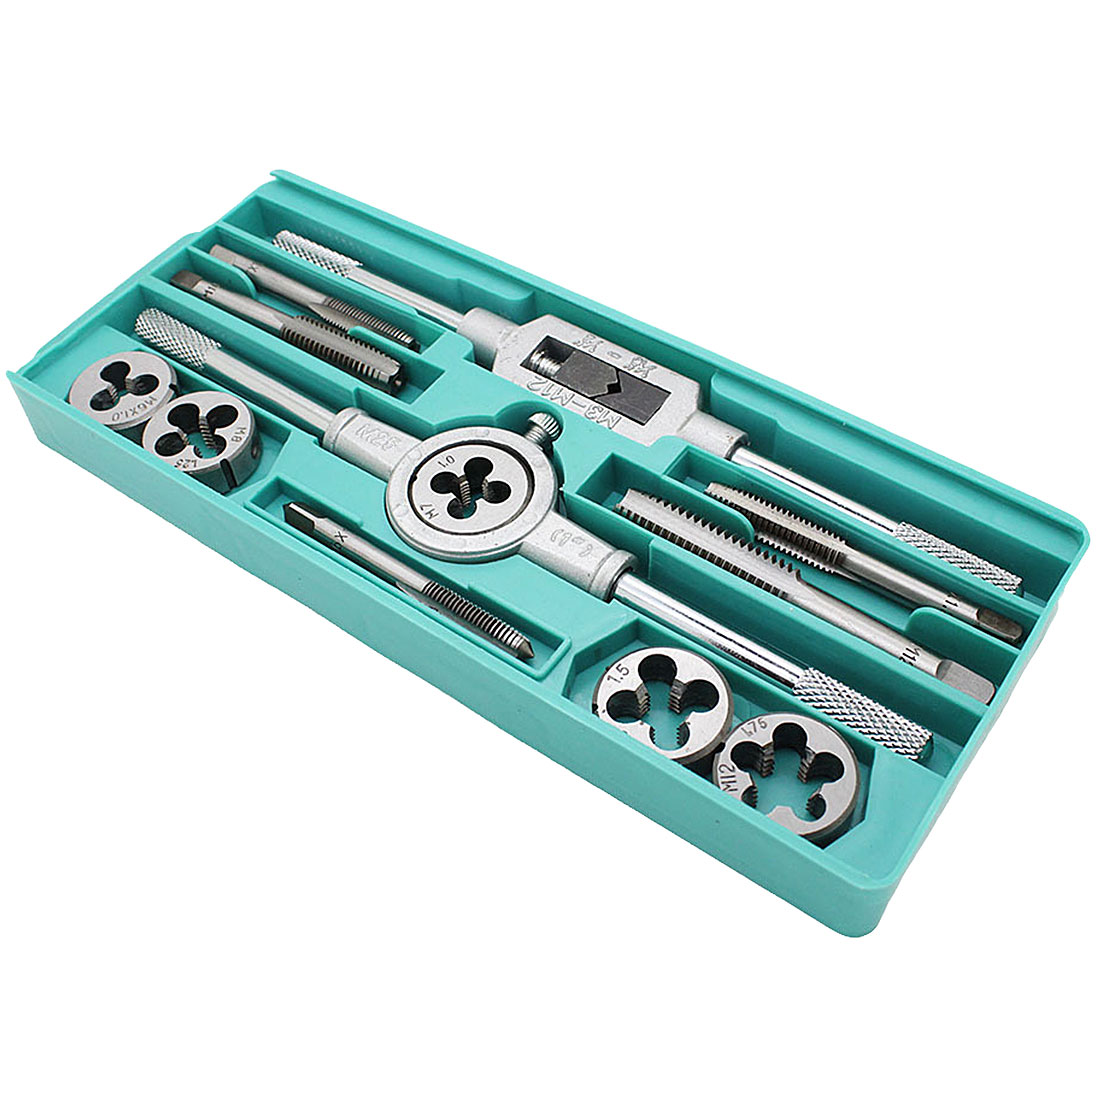 12pcs/set Multifunction NC Screw Tap & Die Set External Thread Cutting Tapping Hand Tool Kit With M6 M7 M8 M10 M12 Taps